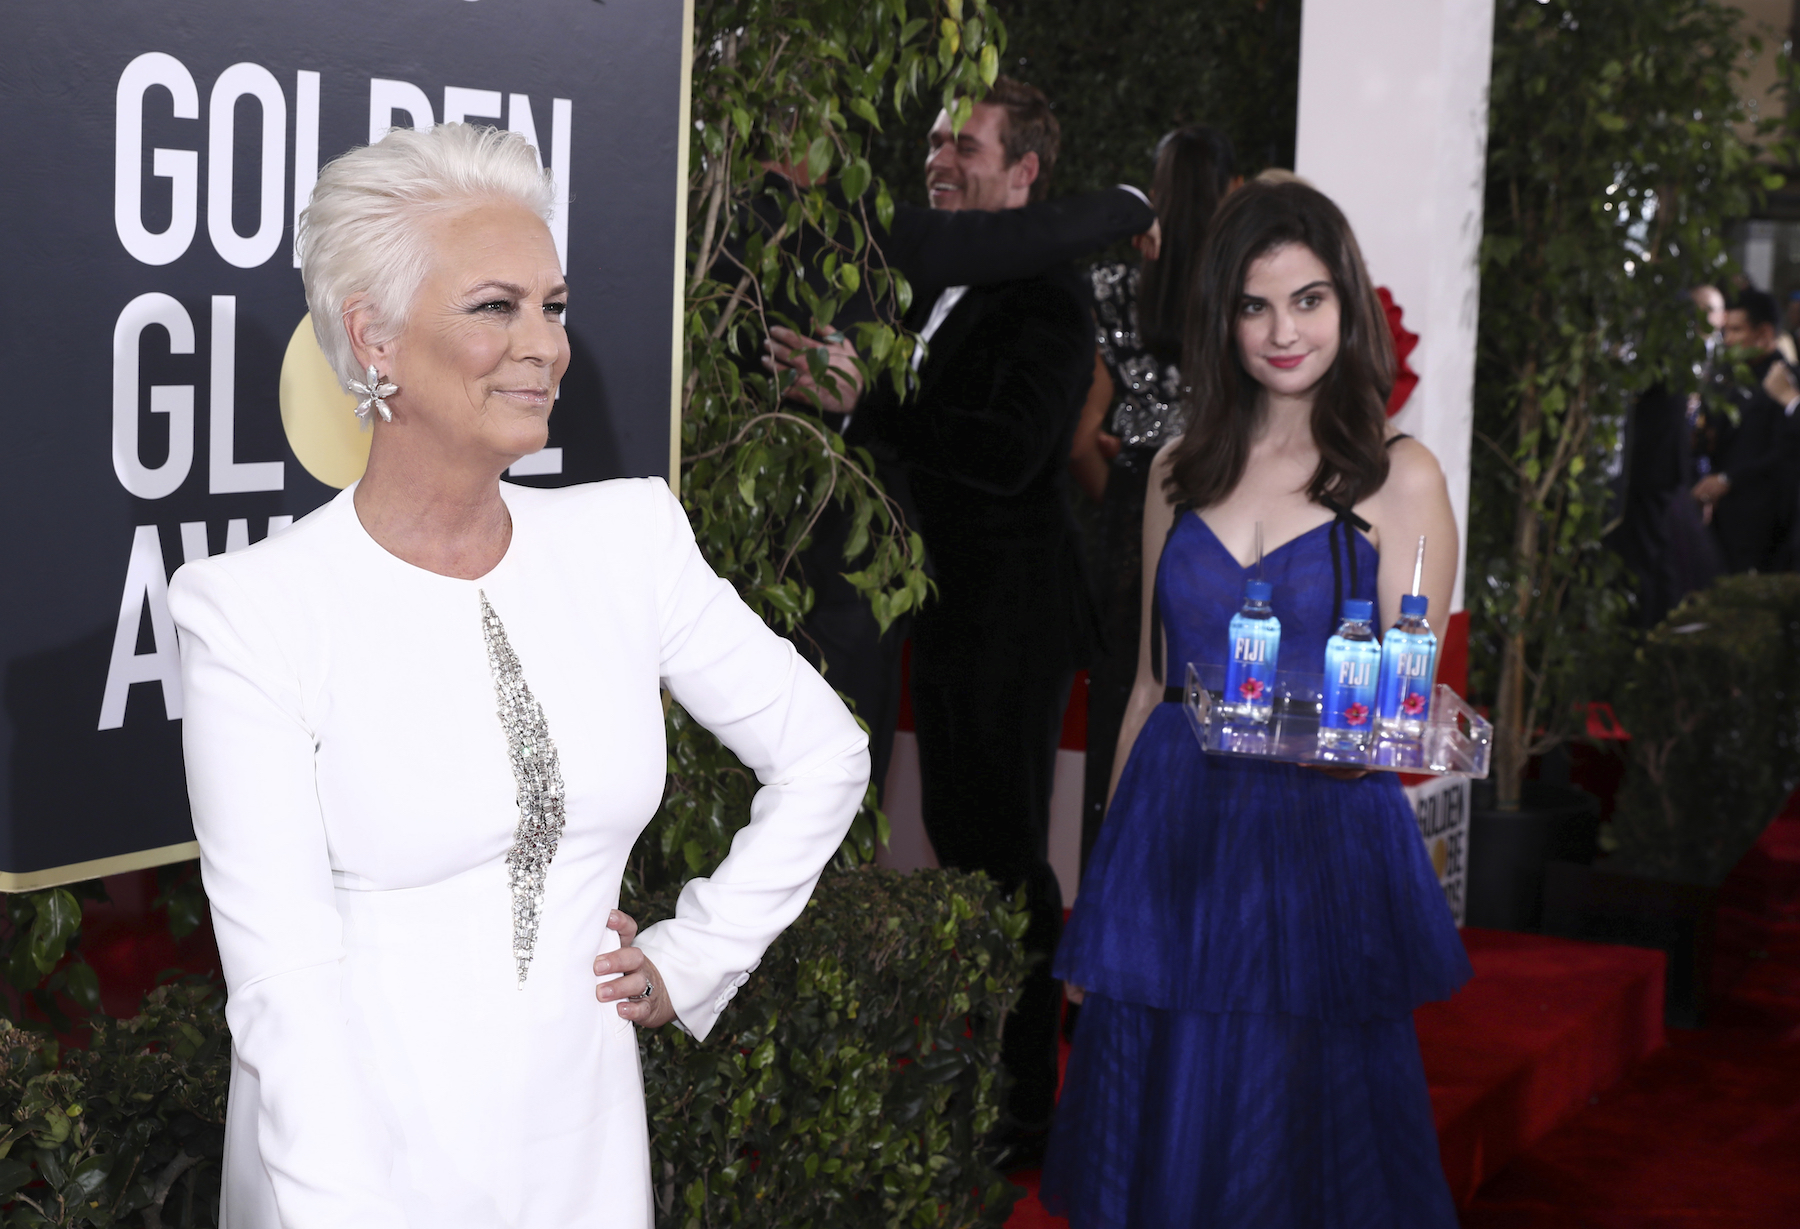 <div class='meta'><div class='origin-logo' data-origin='AP'></div><span class='caption-text' data-credit='Matt Sayles/Invision for FIJI Water/AP Images'>Jamie Lee Curtis at the 76th annual Golden Globe® Awards with FIJI Water on Sunday, Jan. 6, 2019 in Beverly Hills, Calif.</span></div>